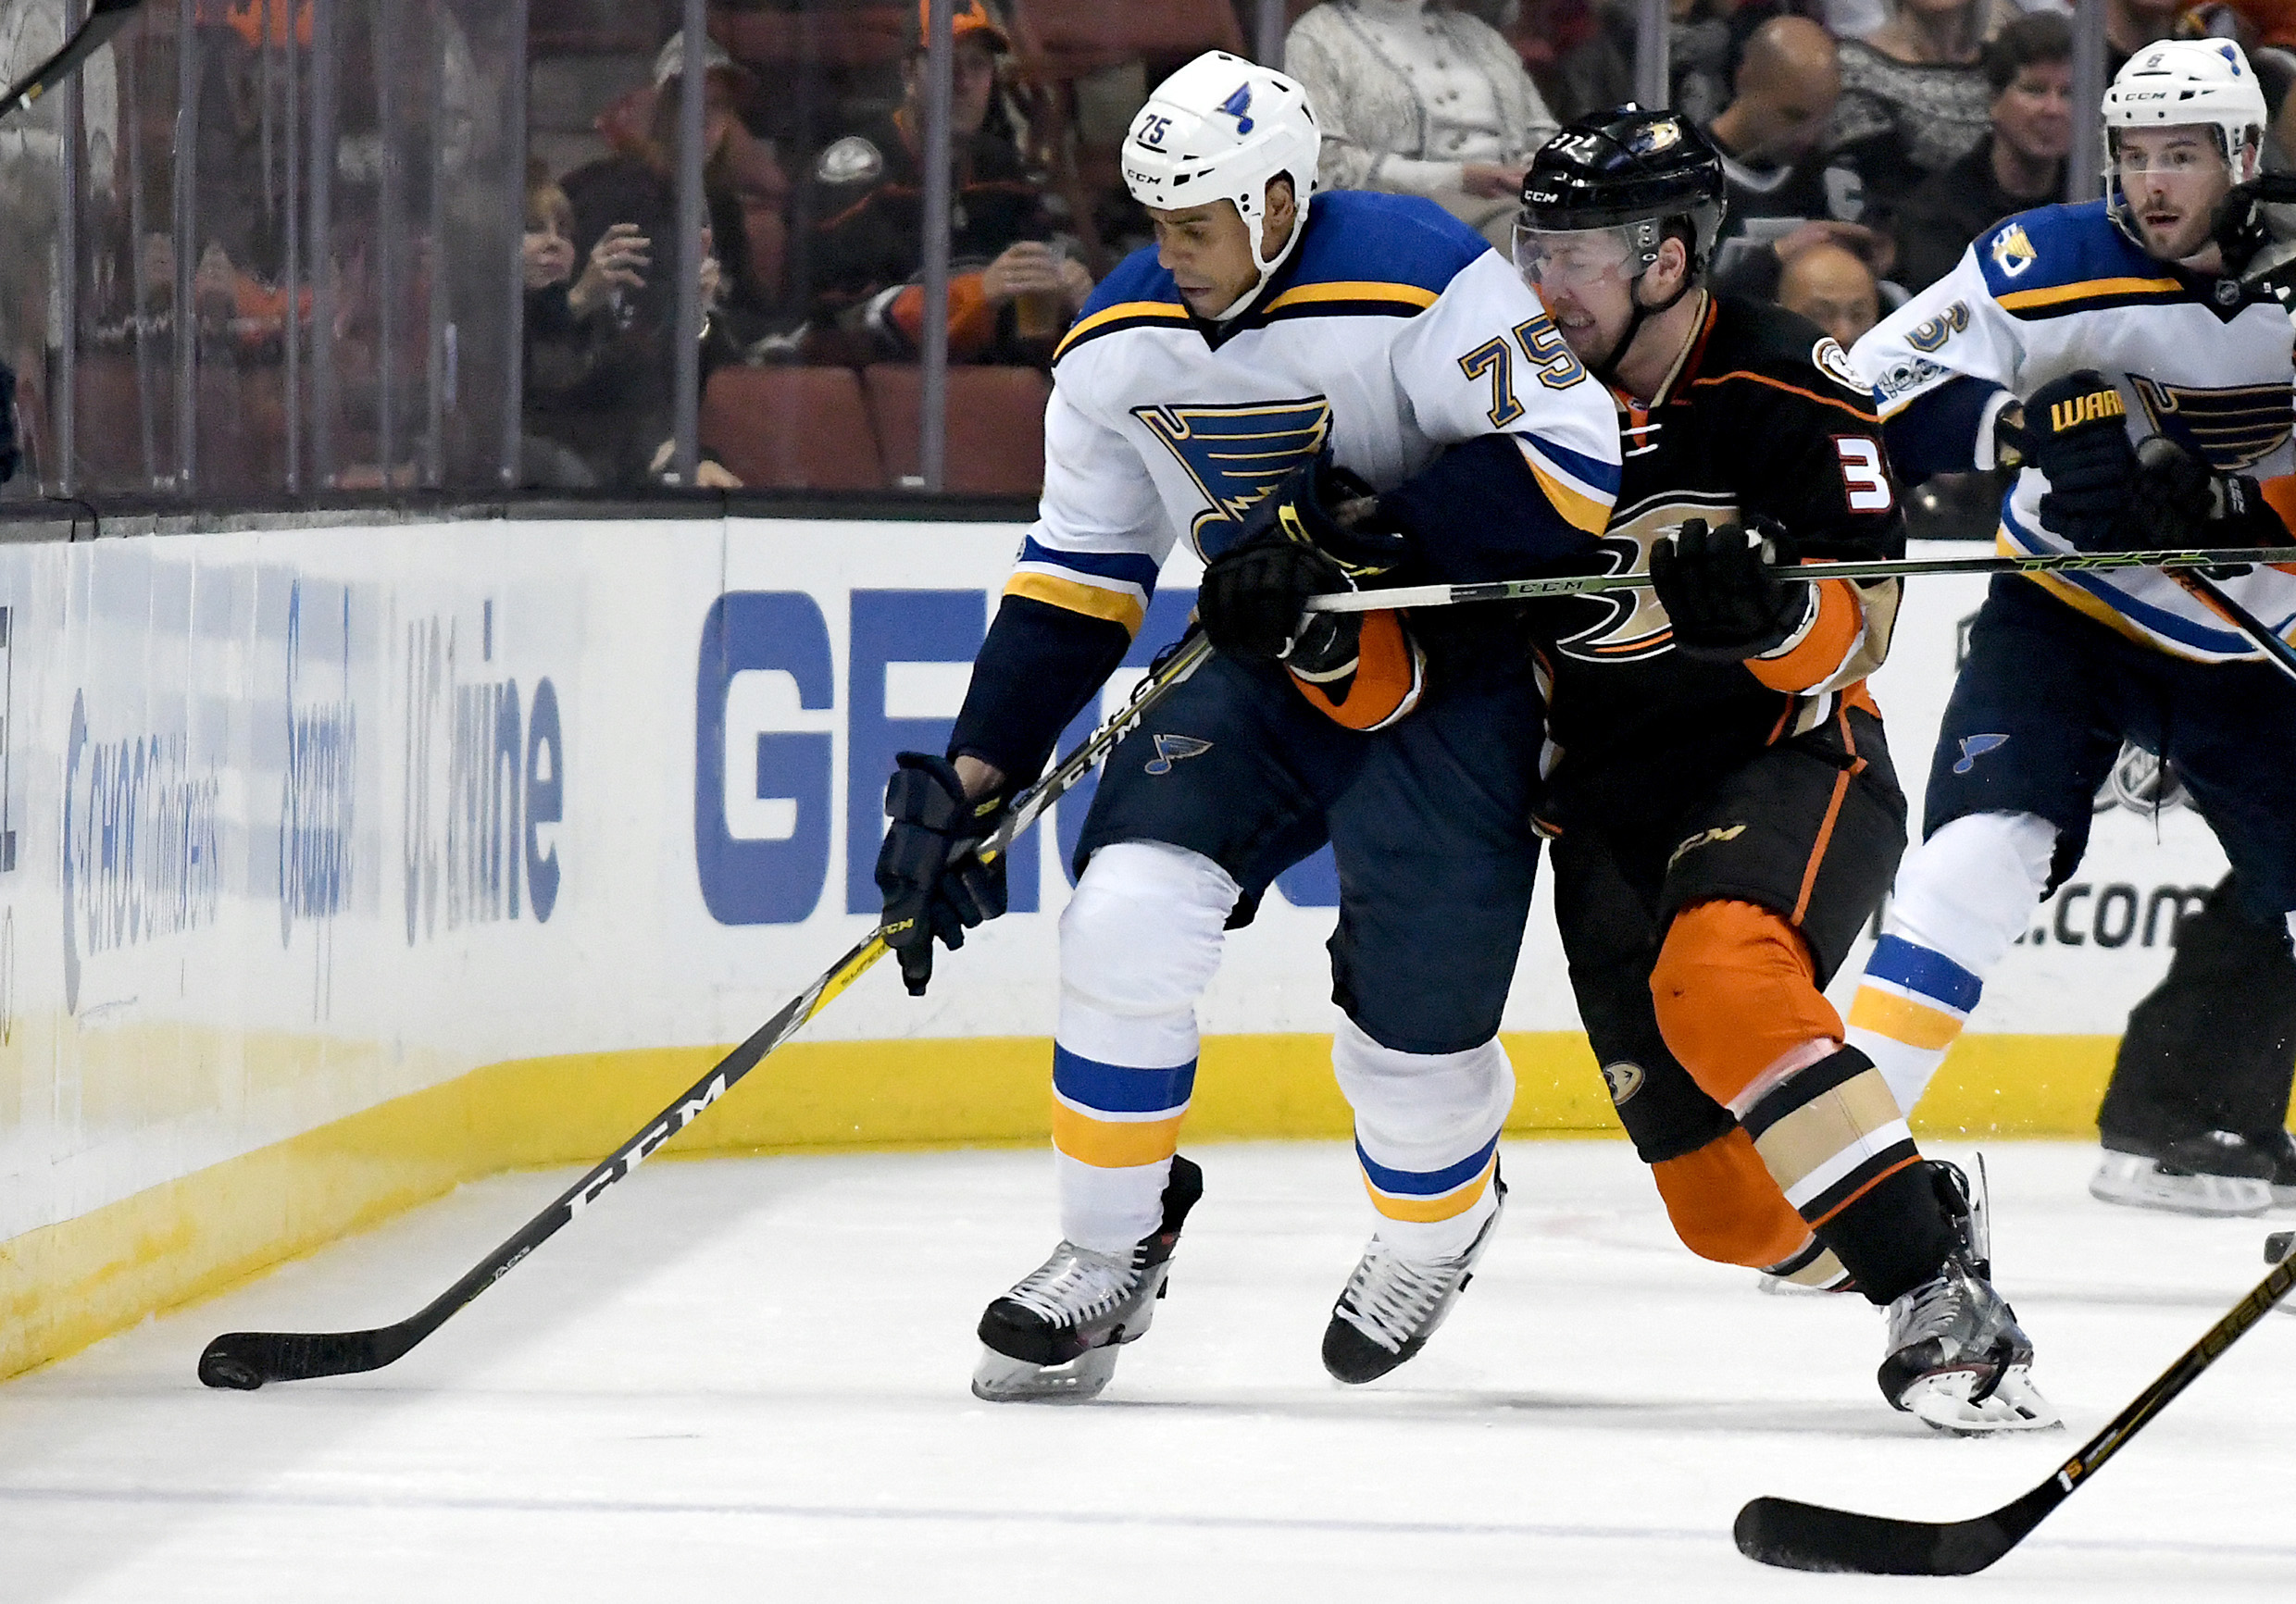 9812988-nhl-st.-louis-blues-at-anaheim-ducks